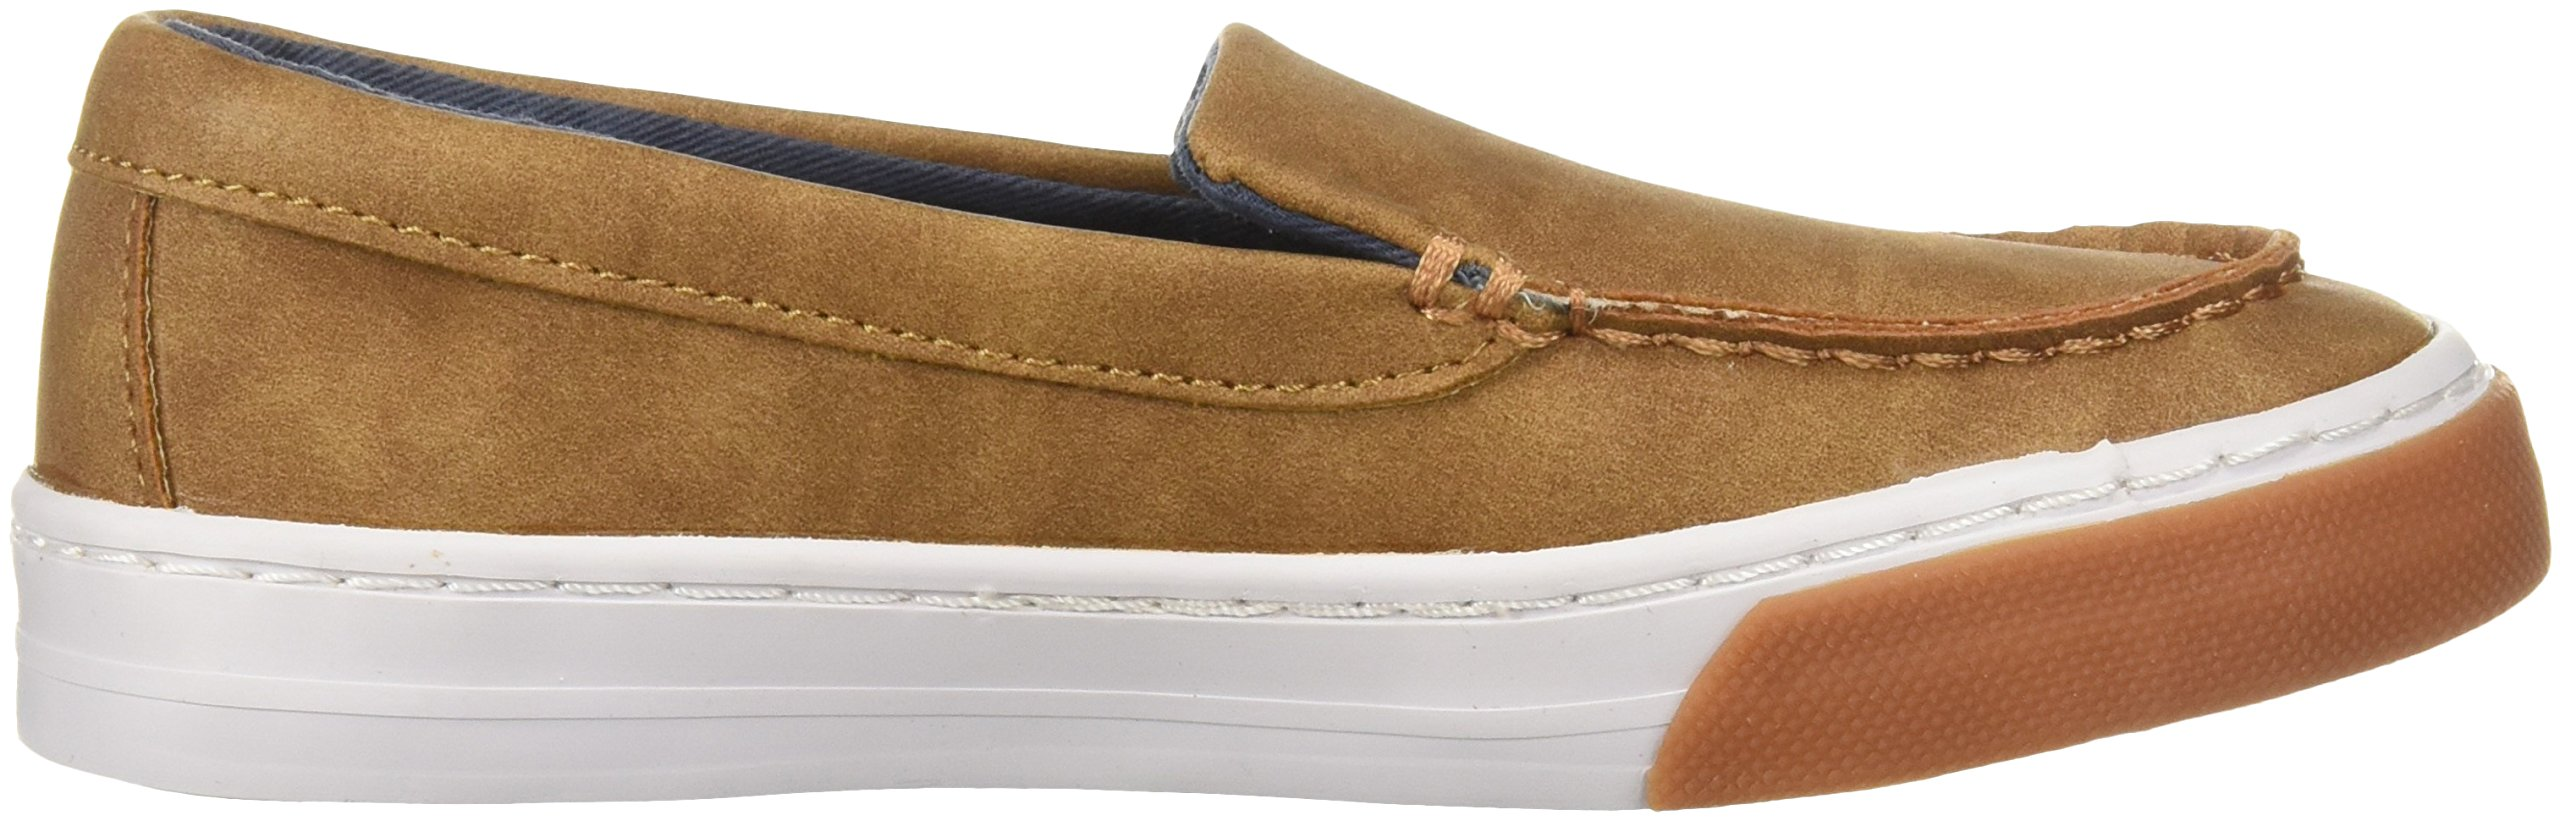 The Children's Place Kids' Sneaker,TAN-BB Indie,12 M US Little Kid by The Children's Place (Image #6)